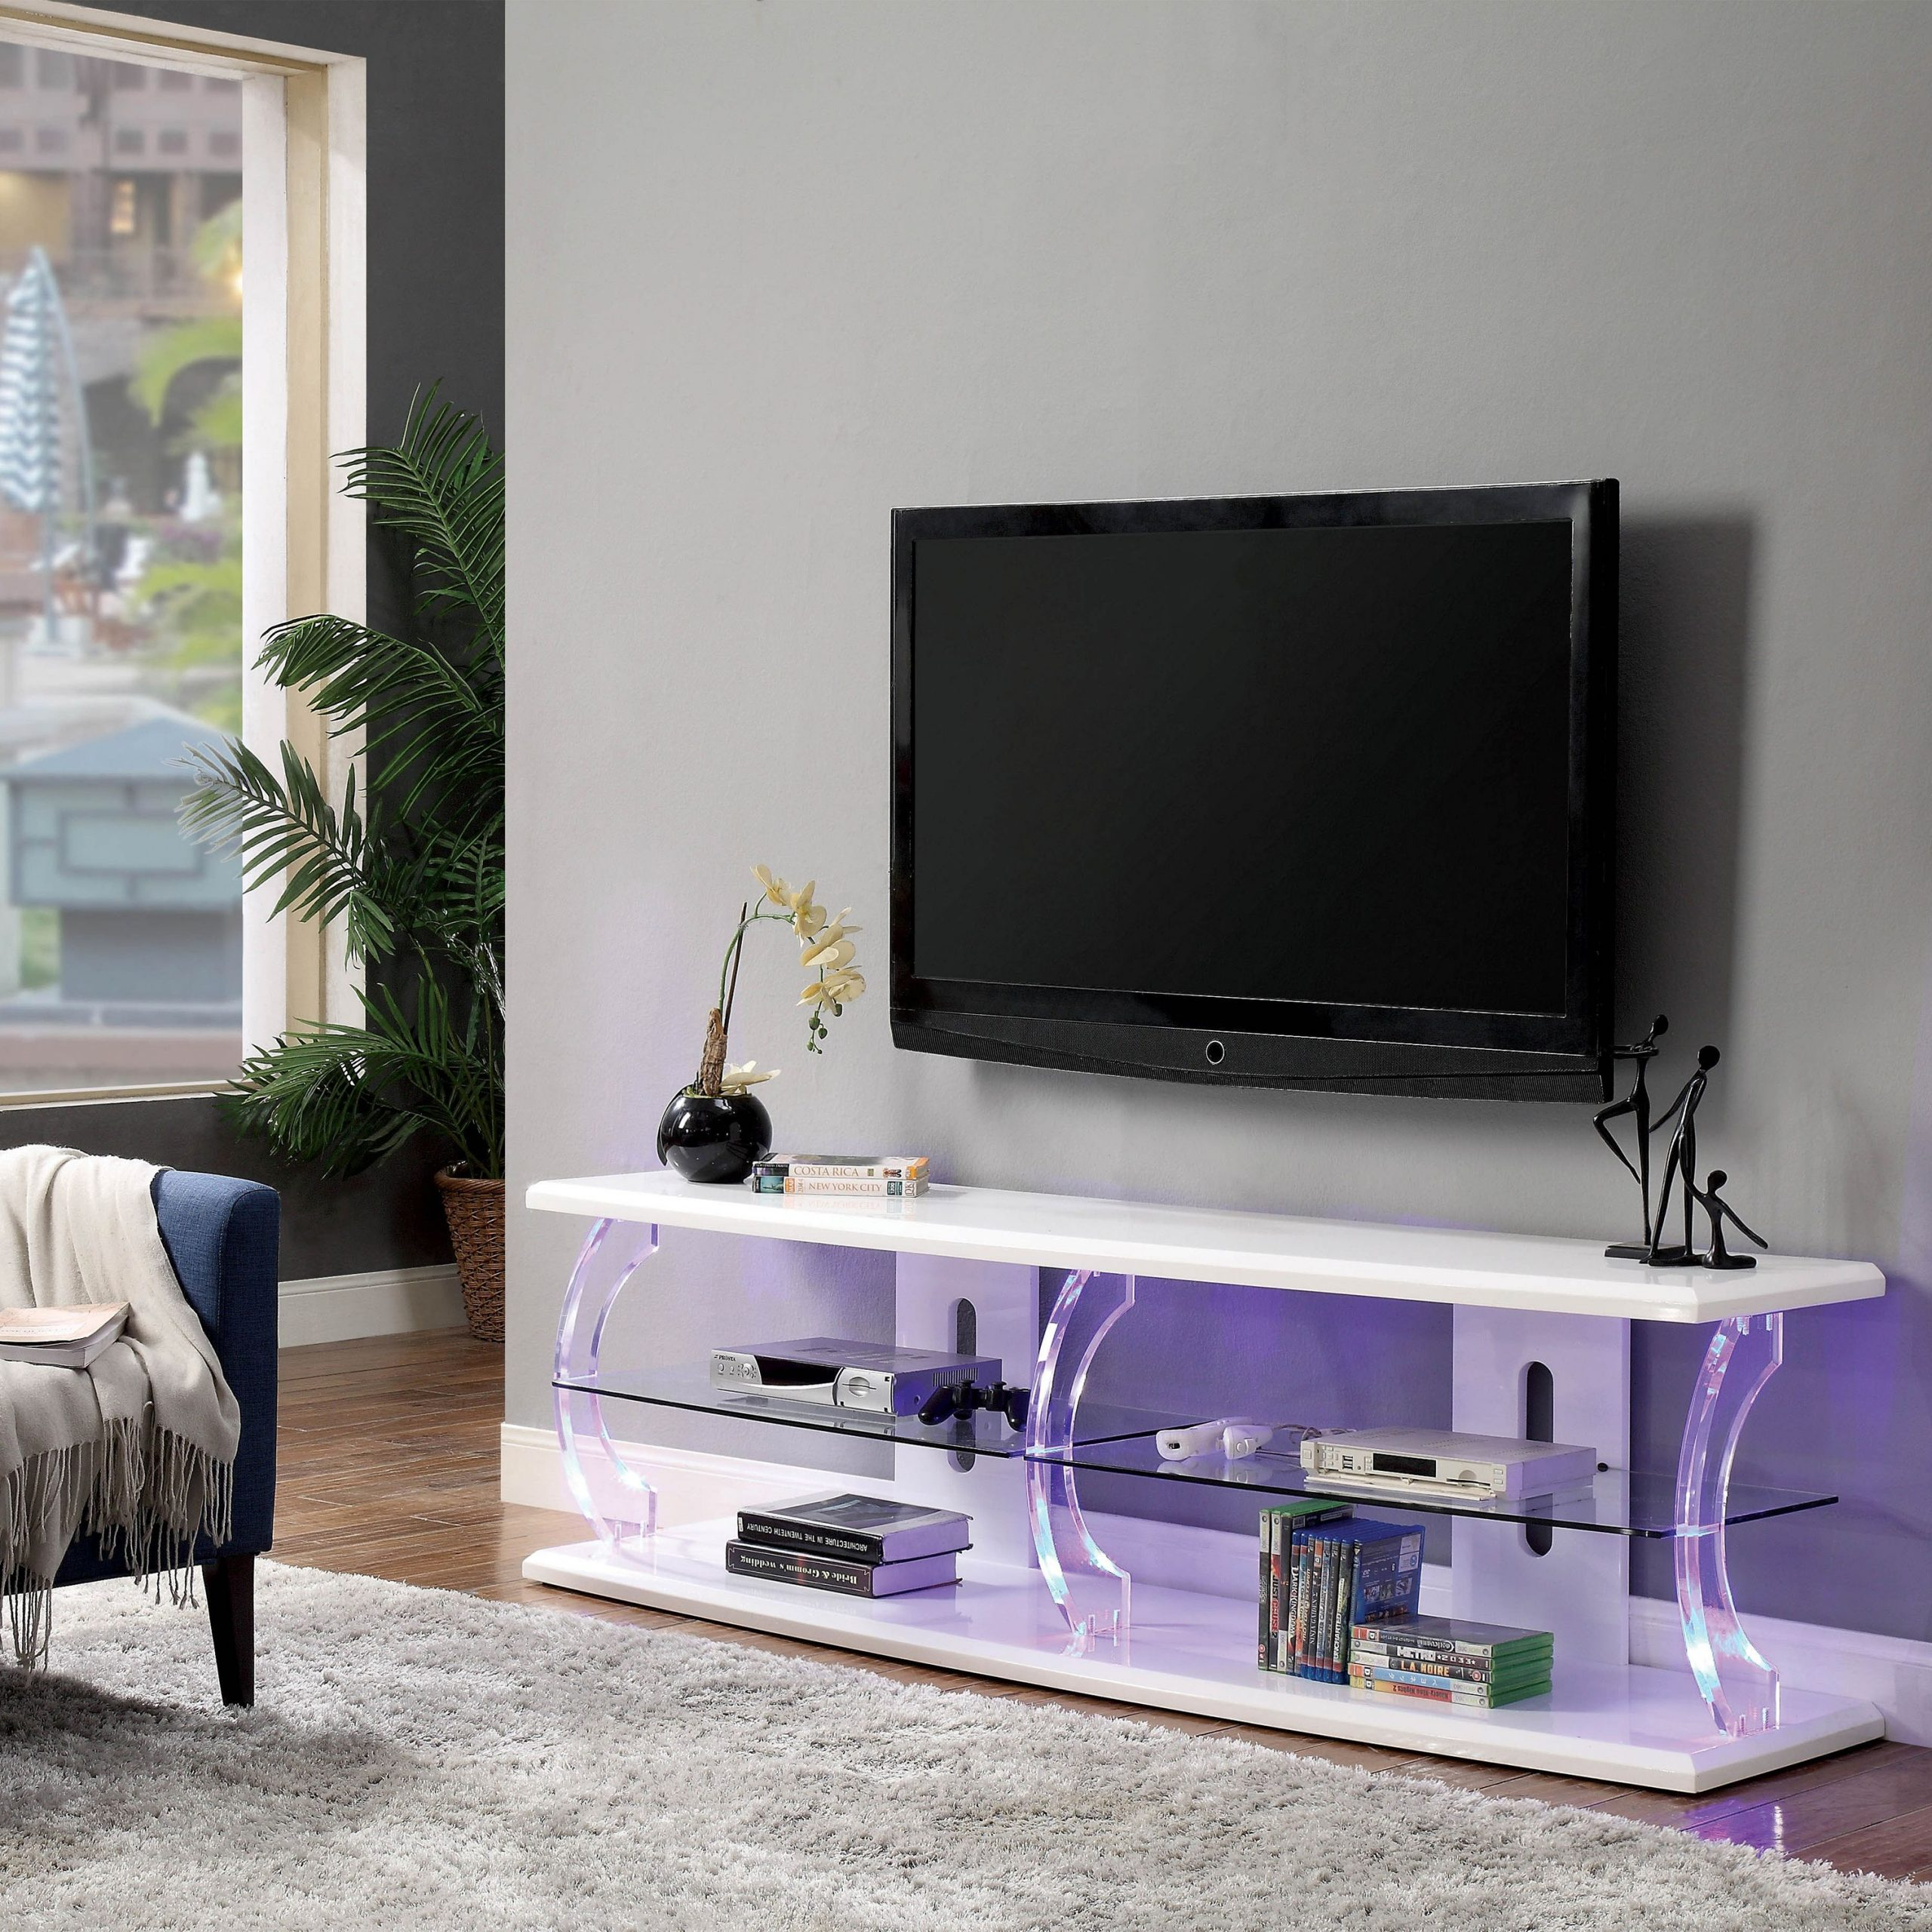 Furniture Of America Daley Modern White 60 Inch Led Tv Regarding Polar Led Tv Stands (View 7 of 15)